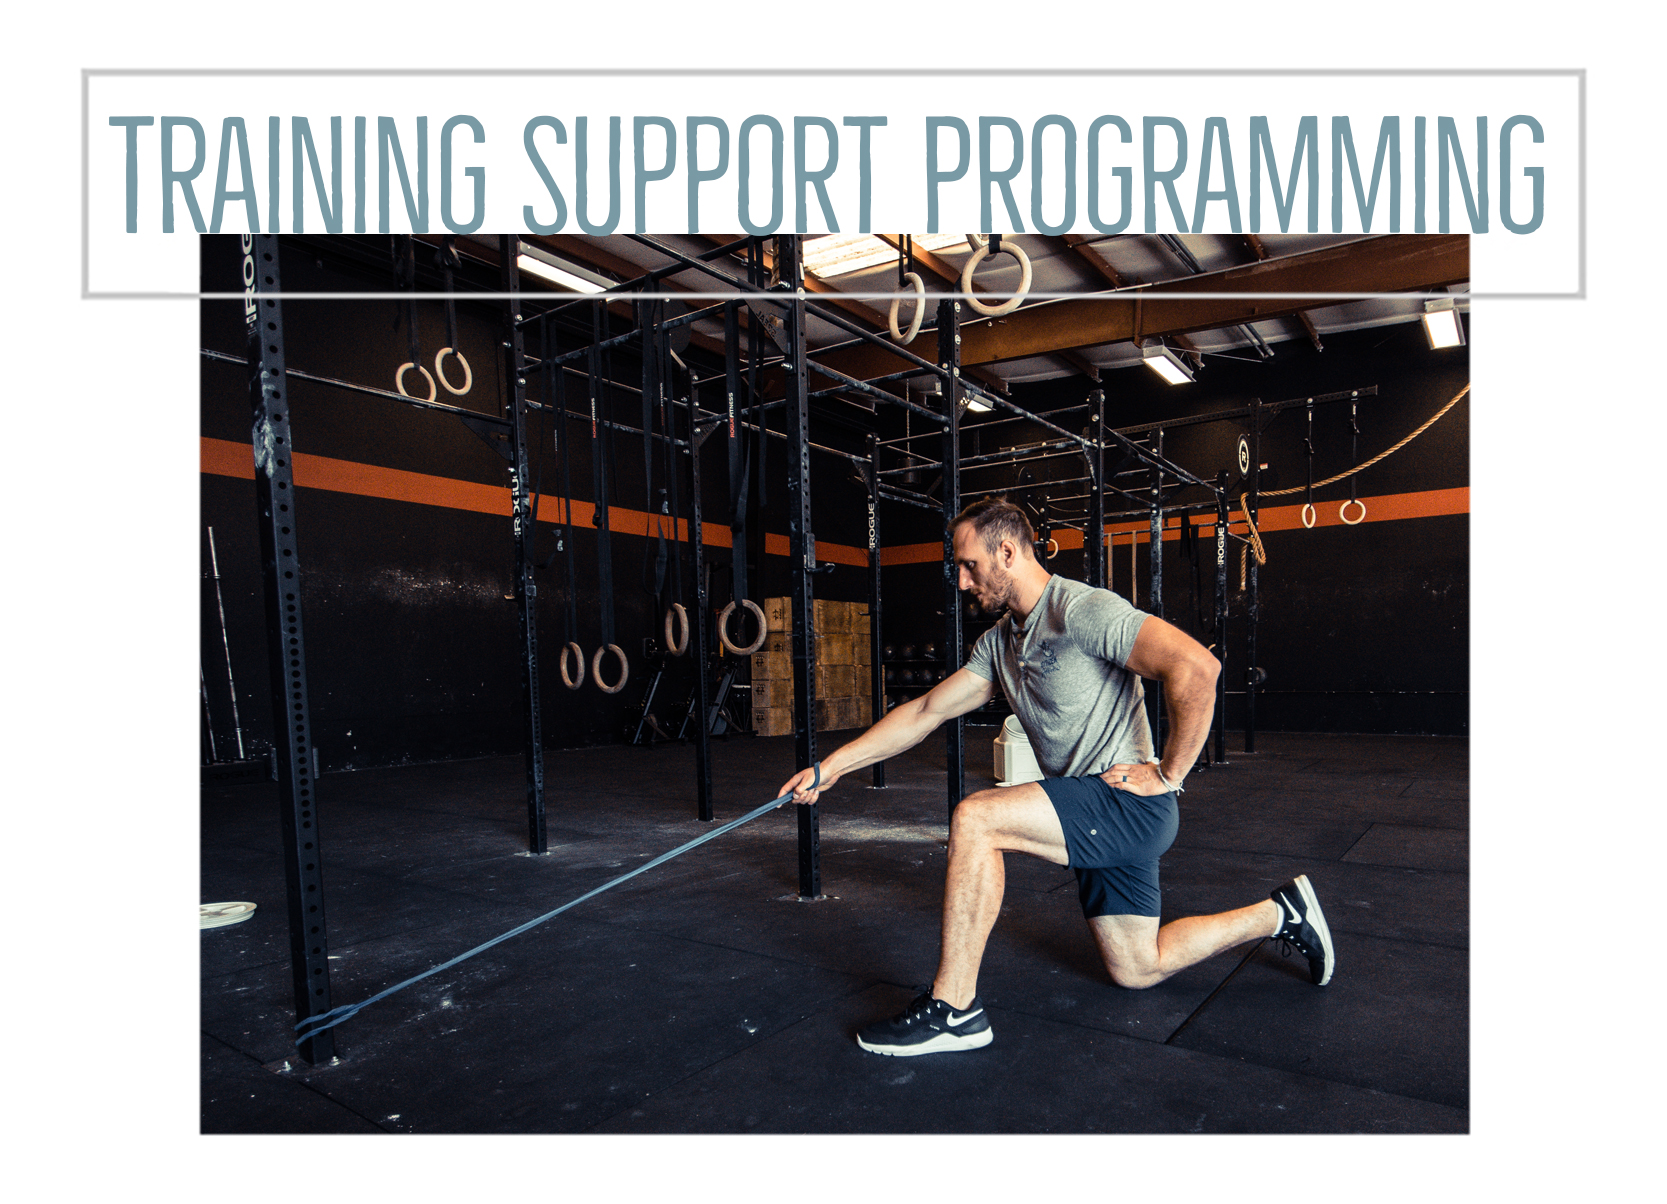 "- Our Training Support Programming is a resource to supplement your current workout plan.For $18 a month, you will have access to our library of body part specific rehab templates that can take you from injury all the way back to the gym, as well as form fixes such as ""Fix your Deadlift: Hips and Hamstrings Edition"" and ""Fix your Bench Press: Shoulder Mobility Edition.""These plans are designed to be carried out in 10-20 minute sessions a few days a week as warm-ups, assistance work, rehab, or prehab. Like with our comprehensive workout programs, our supplemental Training Support Programming is accessed through the Citizen Athletics app and includes videos of every exercise in every plan.New plans will be added monthly, and as a member you can even weigh in about what you would like to see!*All memberships begin with a free 7-day trial*"